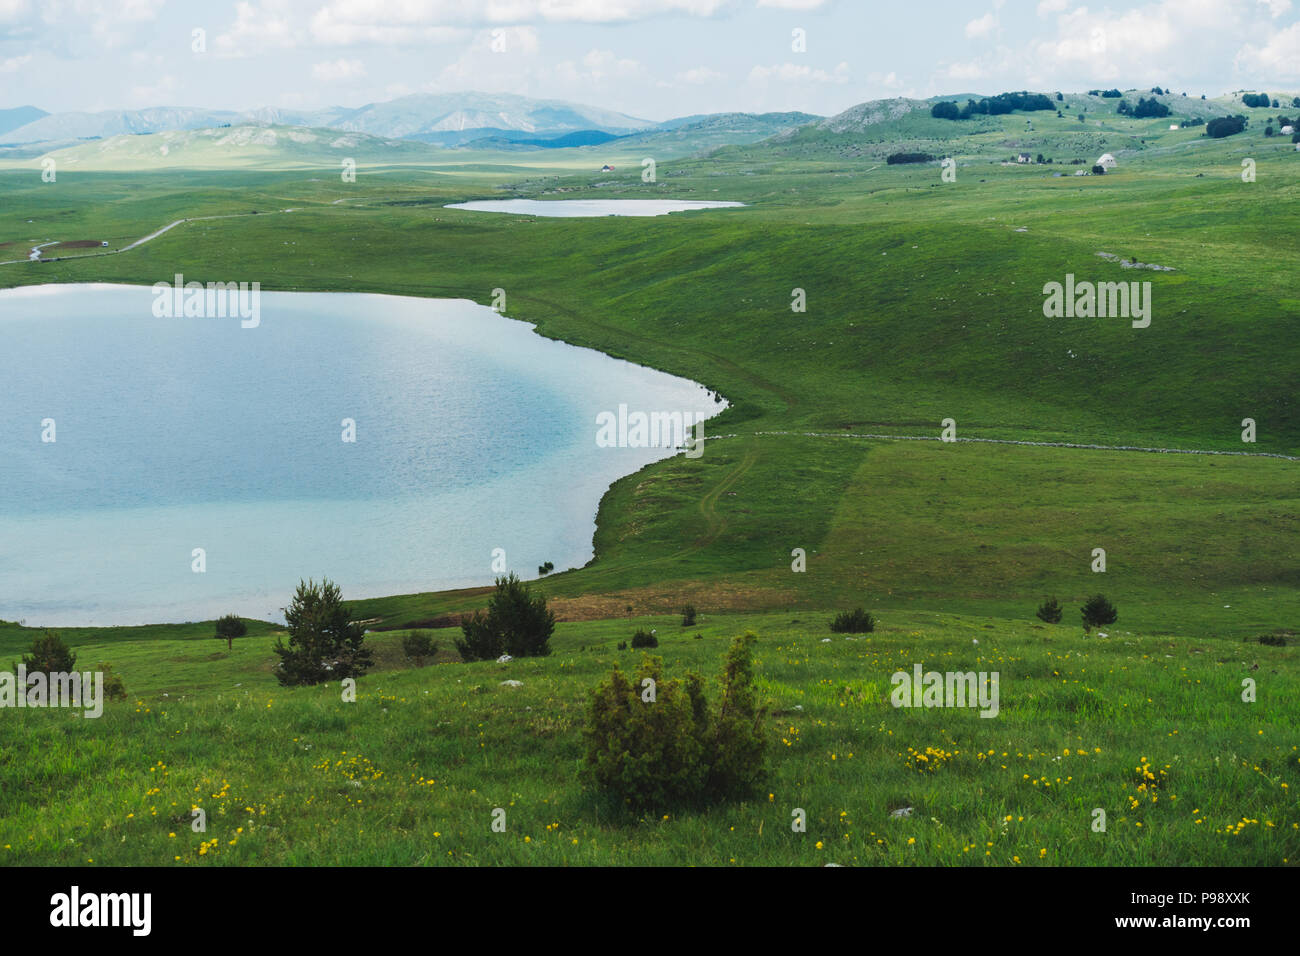 Vrazje Jezero (Devil's Lake), a two-tone glacial lake in the middle of rolling green hills near Zabljak, Montenegro - Stock Image